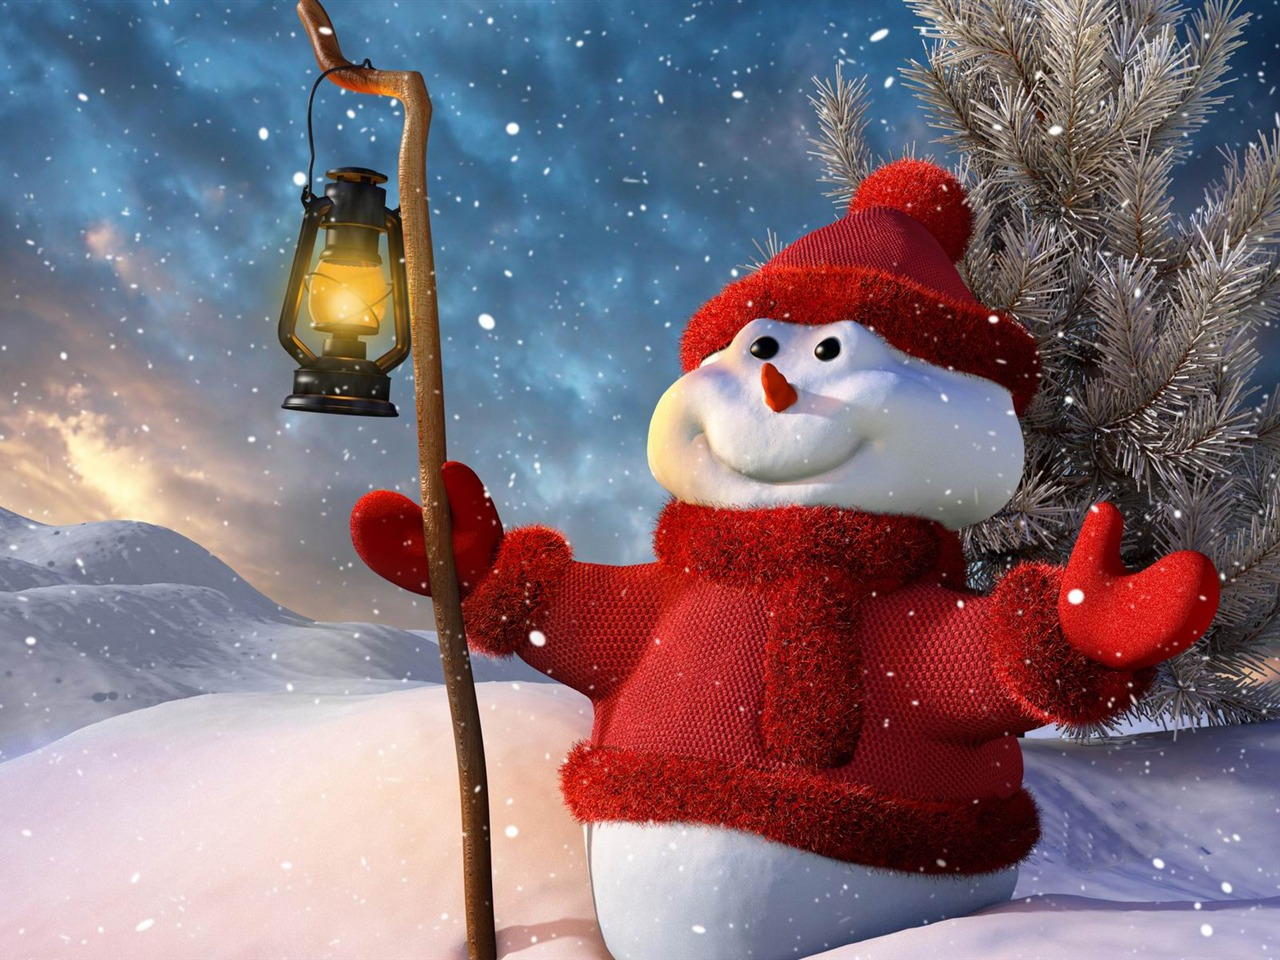 New Year 2014 Hd Wallpapers Aesthetic Cute Snowman Christmas Hd Computer Wallpaper